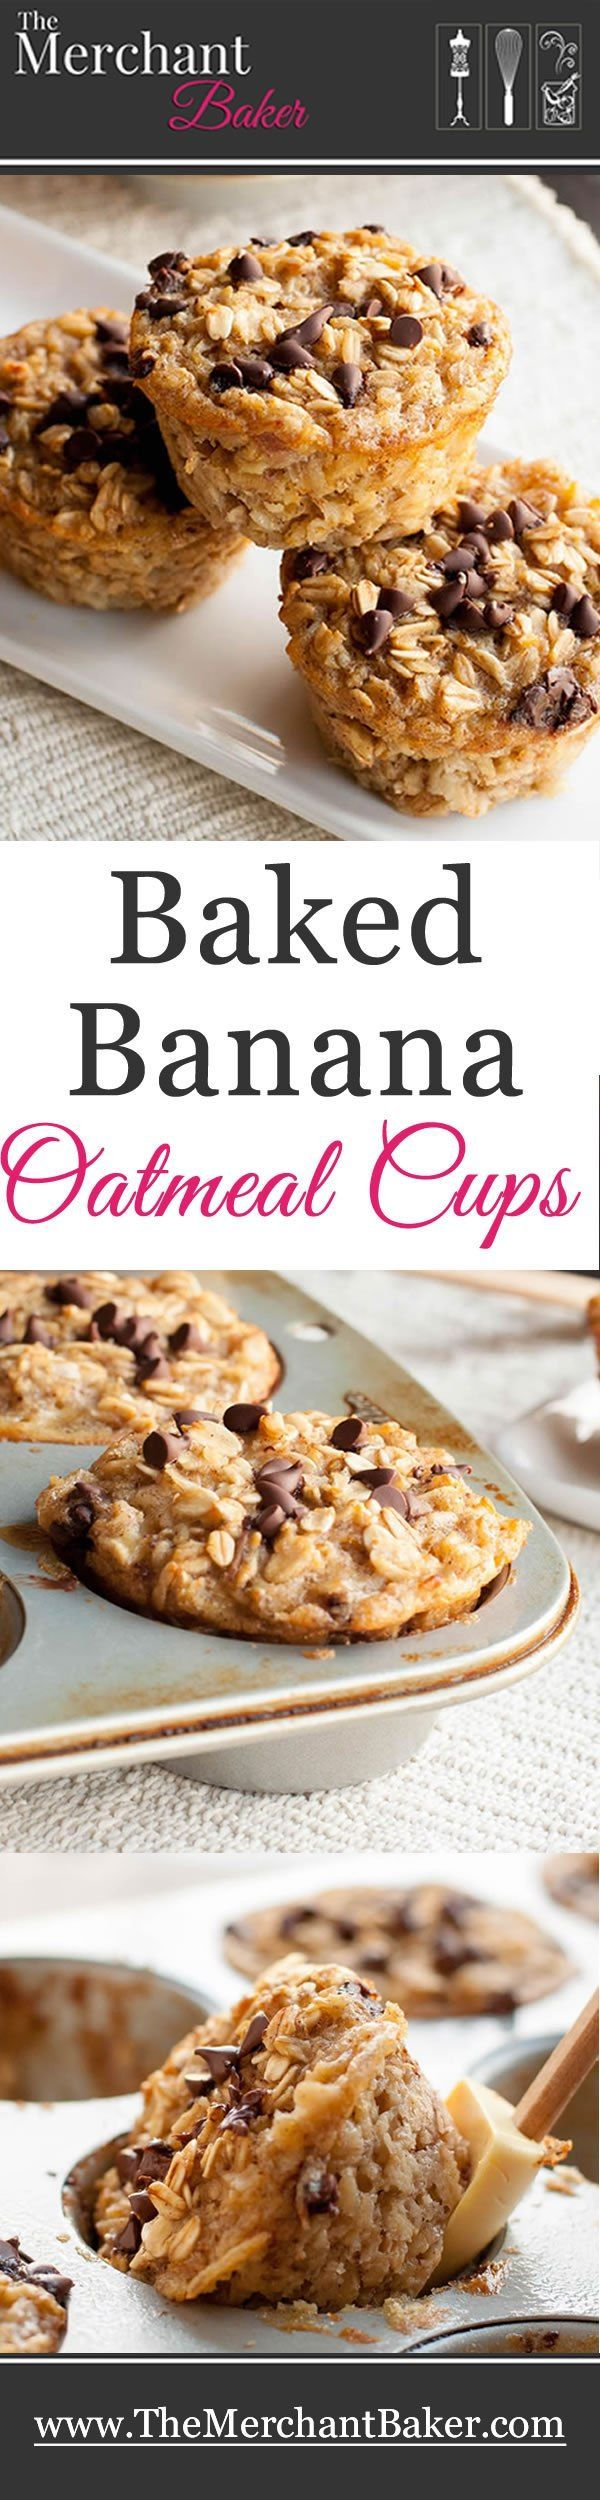 Baked Banana Oatmeal Cups | healthy recipe ideas @xhealthyrecipex |